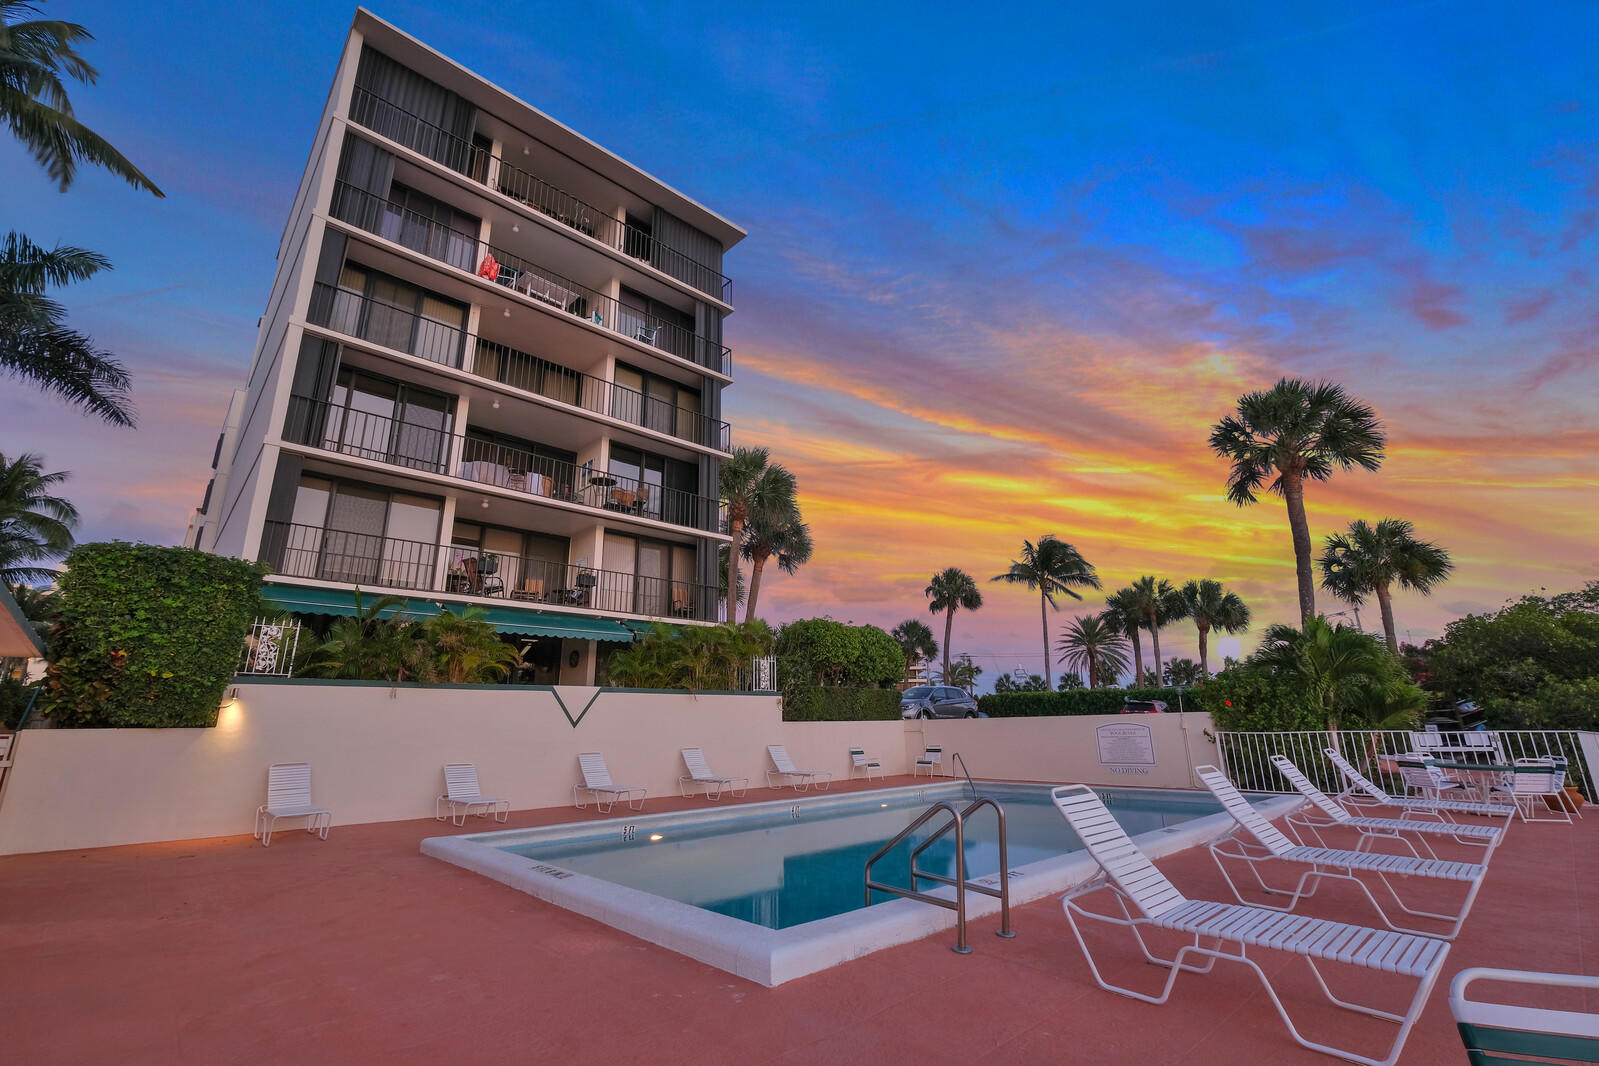 225 Beach Road 403, Tequesta, Florida 33469, 2 Bedrooms Bedrooms, ,2 BathroomsBathrooms,A,Condominium,Beach,RX-10705699